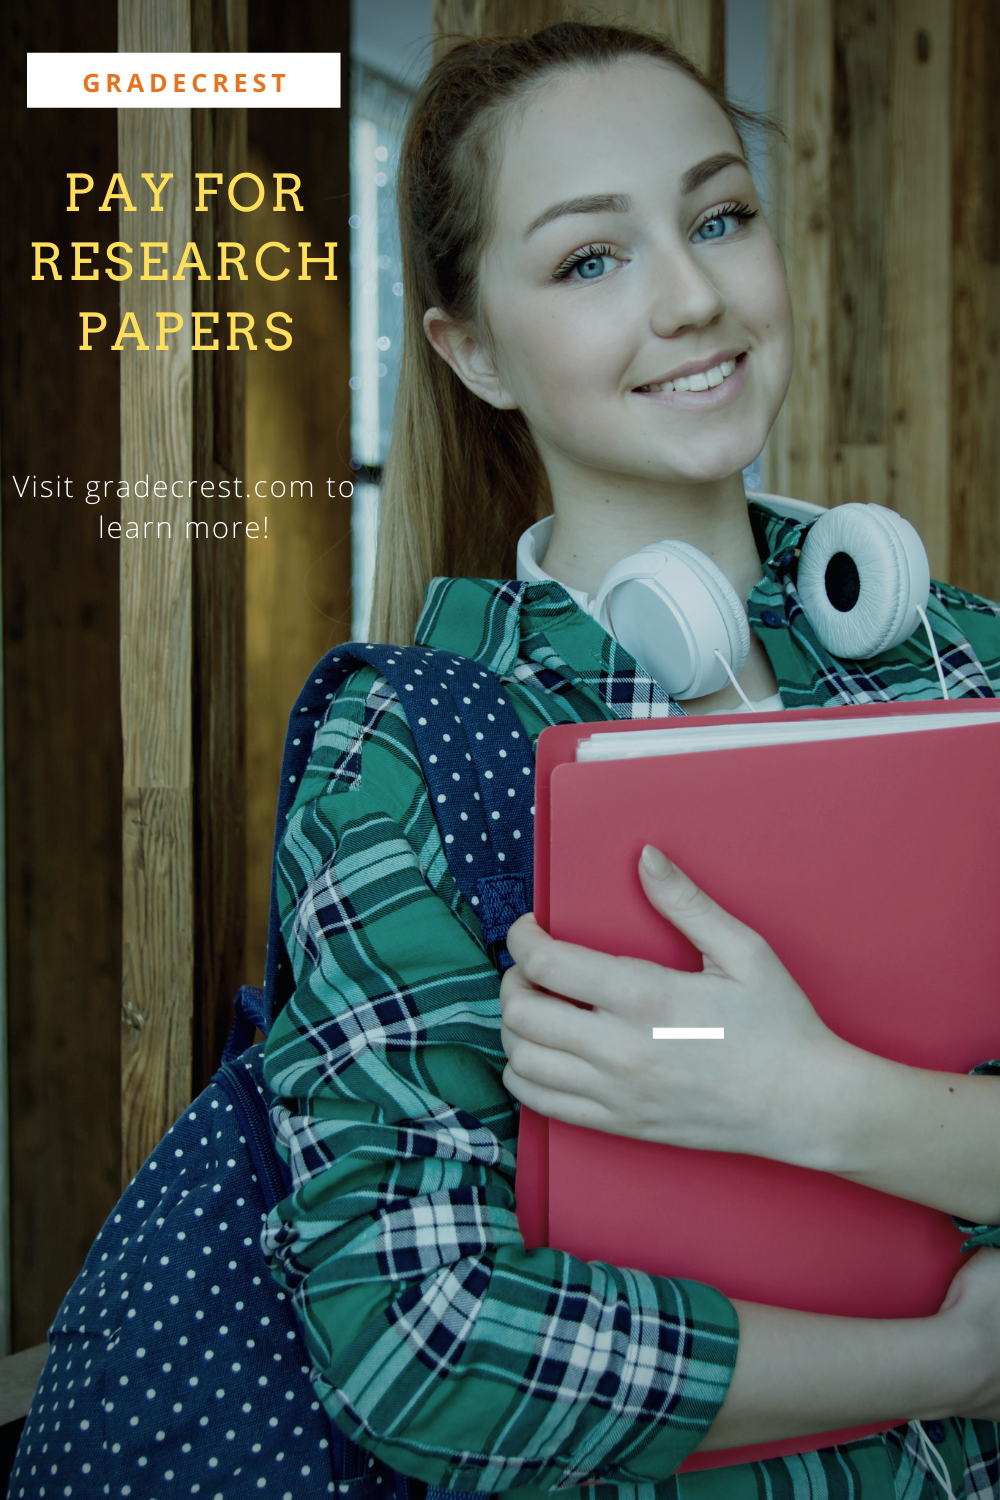 Pay Someone To Do Your Research Paper In 2020 Research Paper Paper Writer Essay Writer